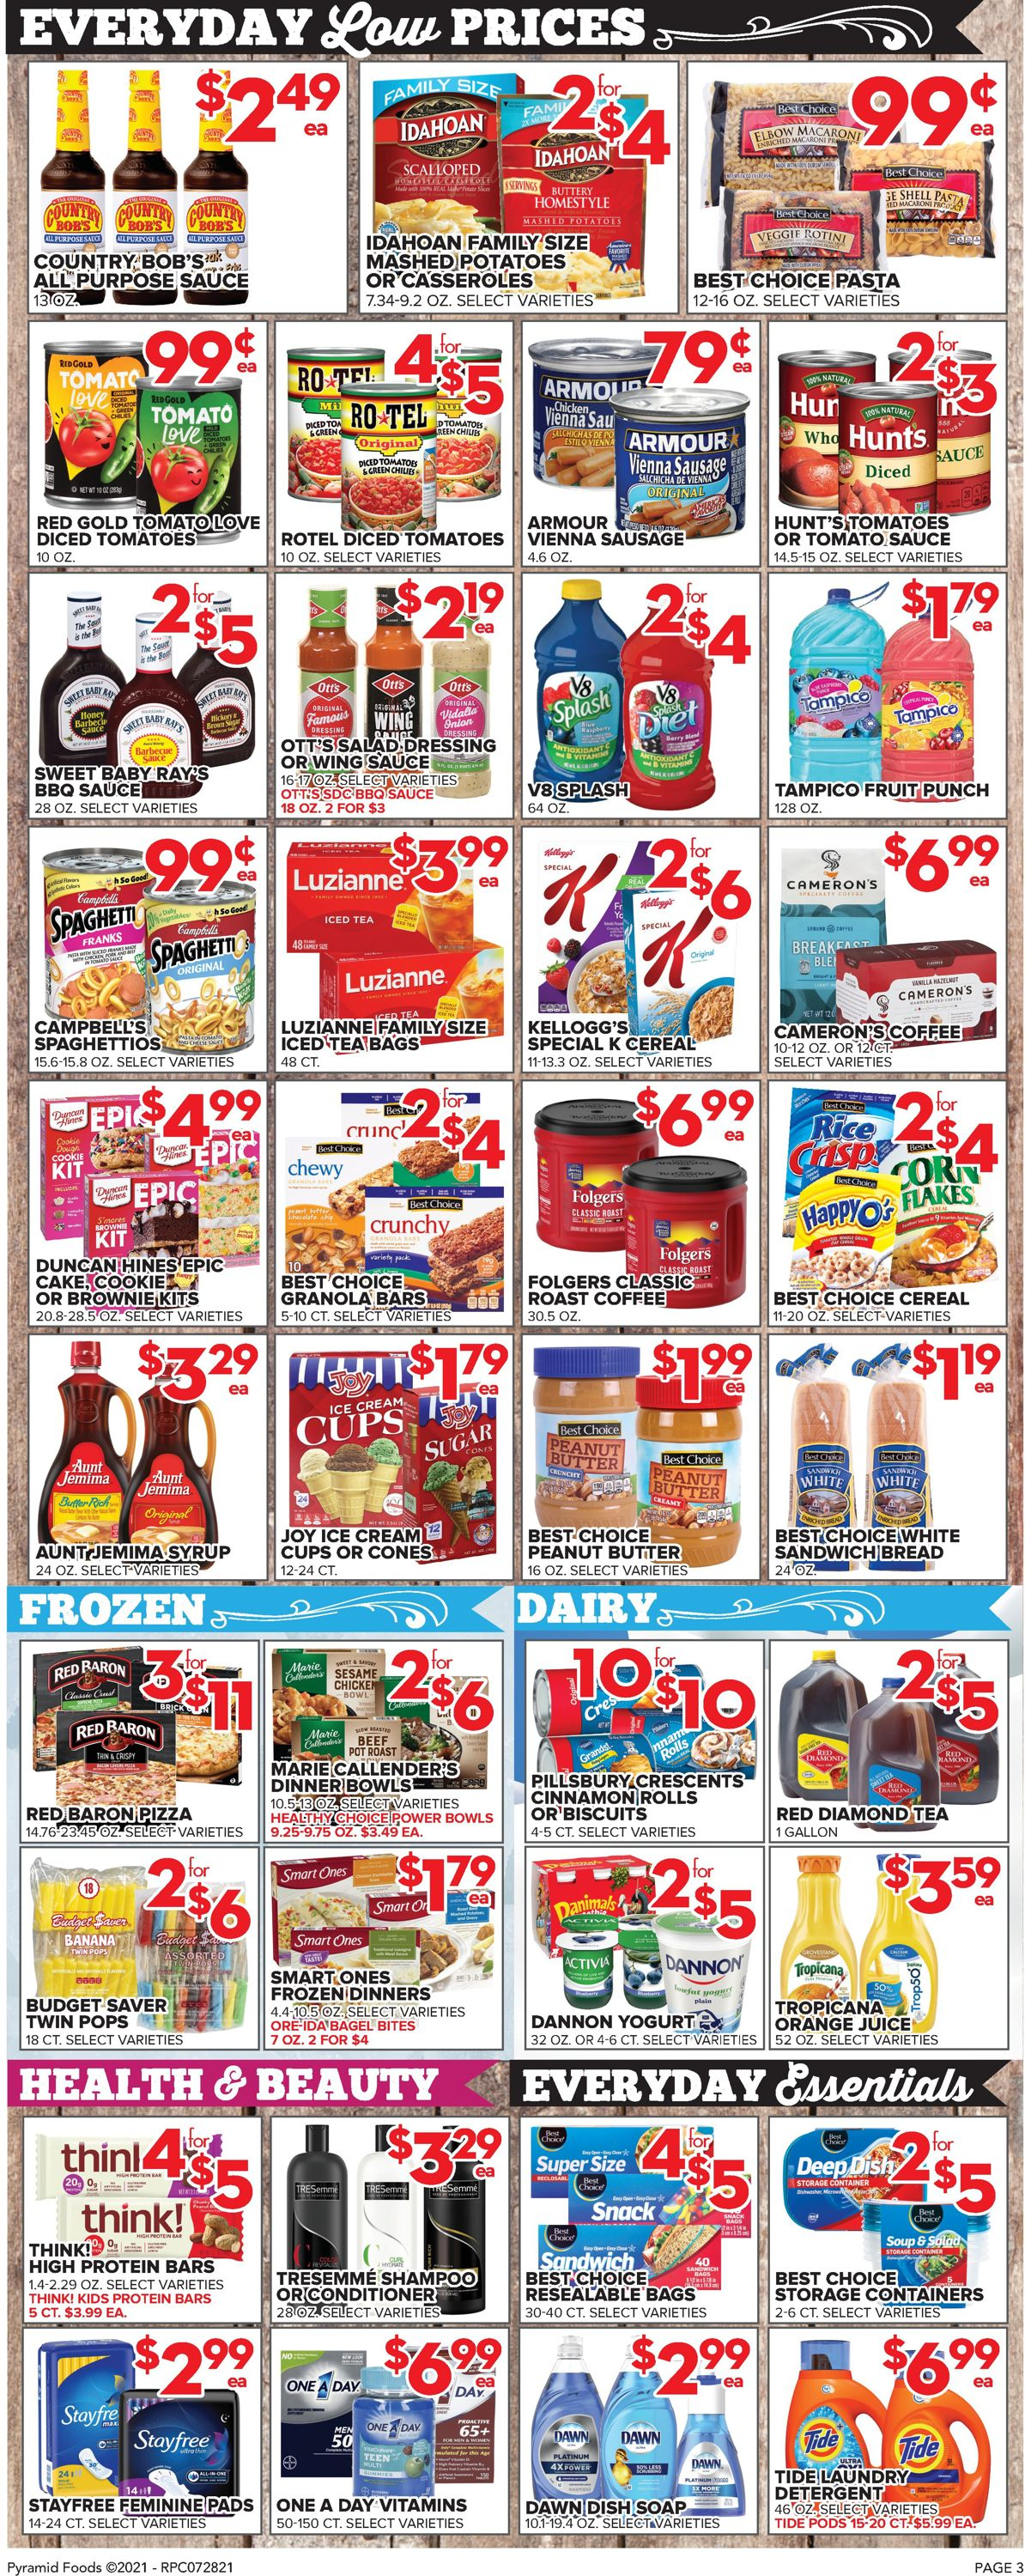 Price Cutter Weekly Ad Circular - valid 07/28-08/03/2021 (Page 3)